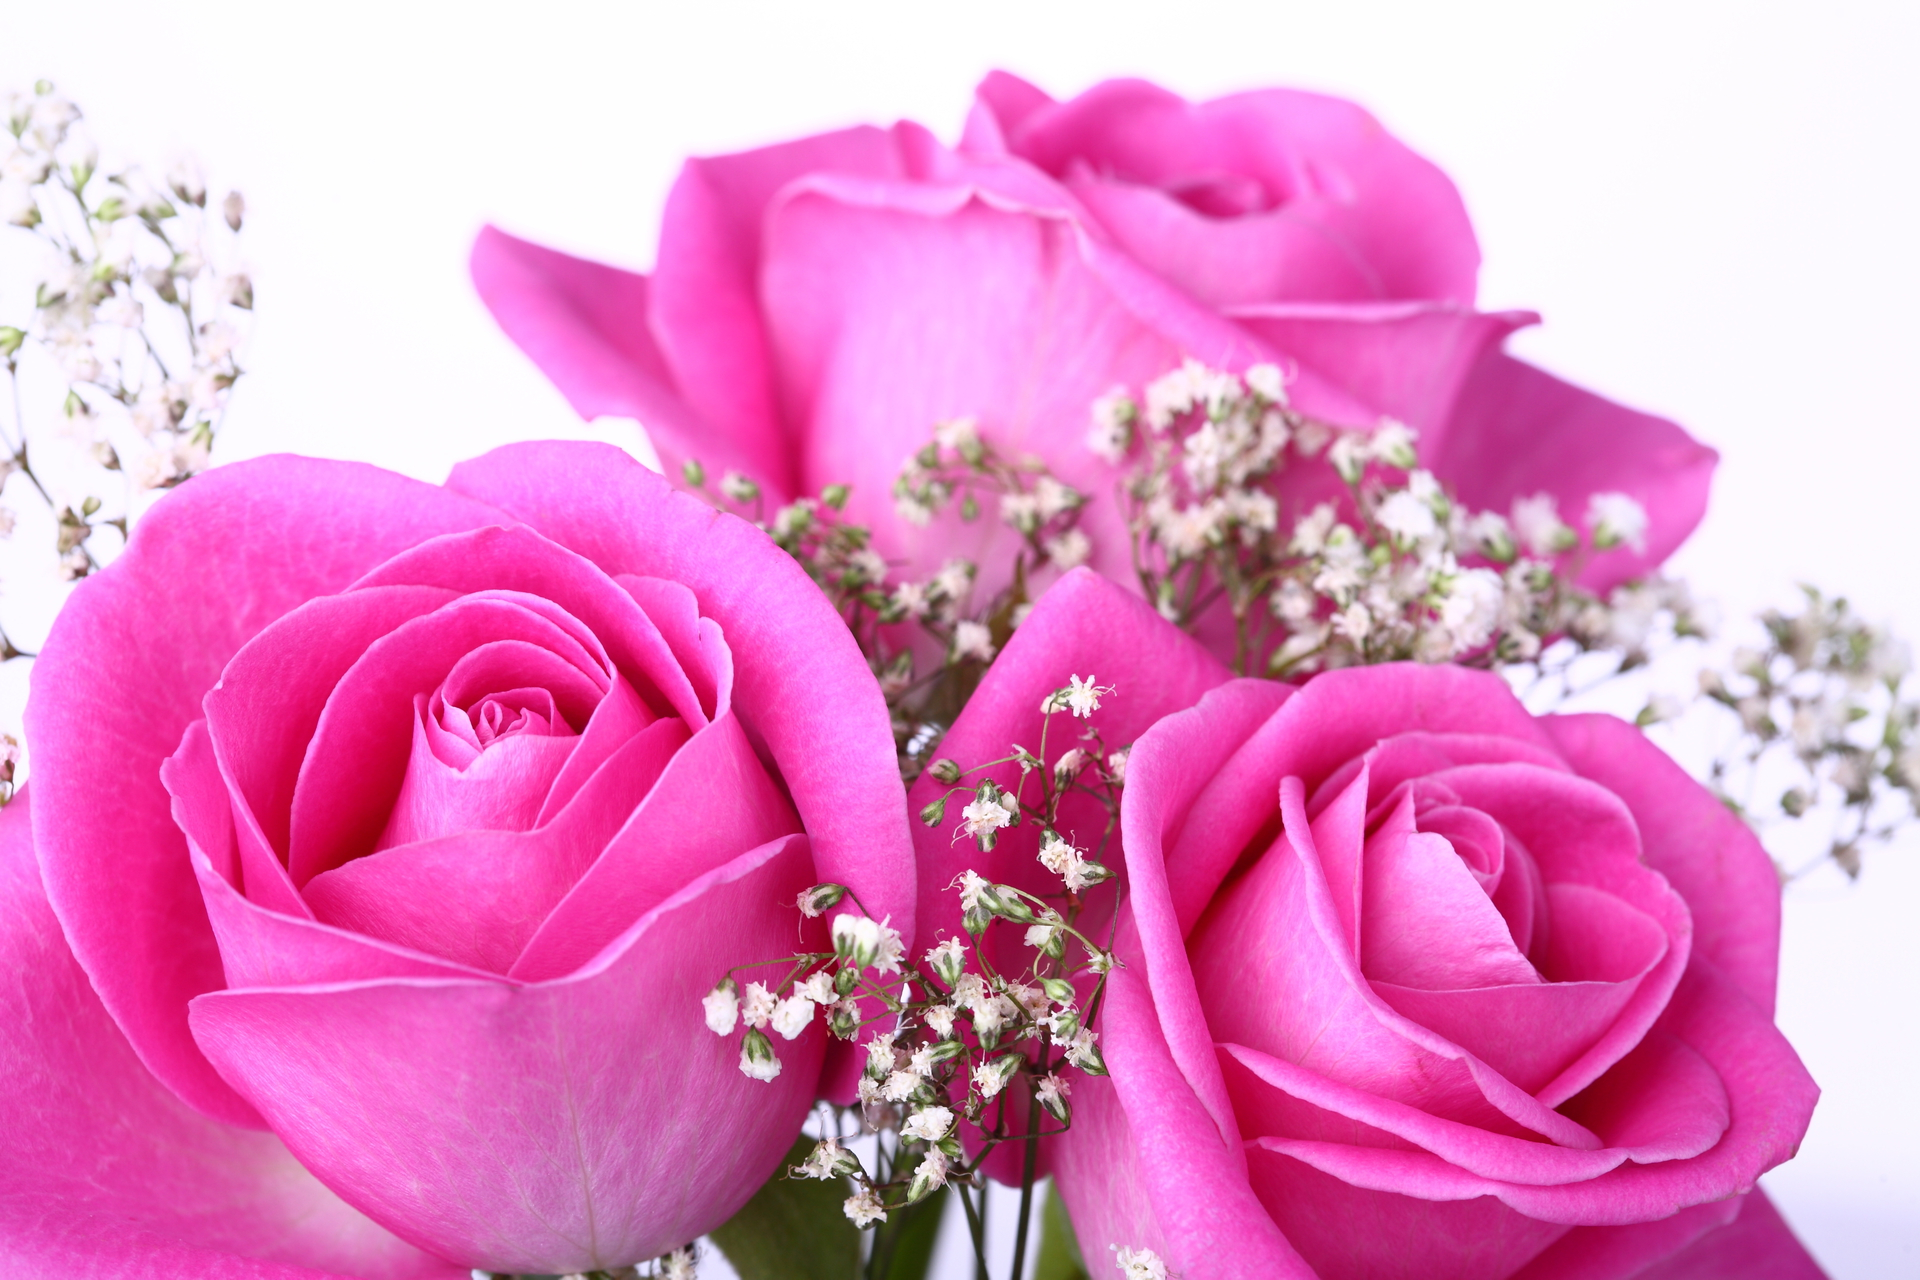 Beautiful Pink Rose Flowers Images Hd Flowers Healthy